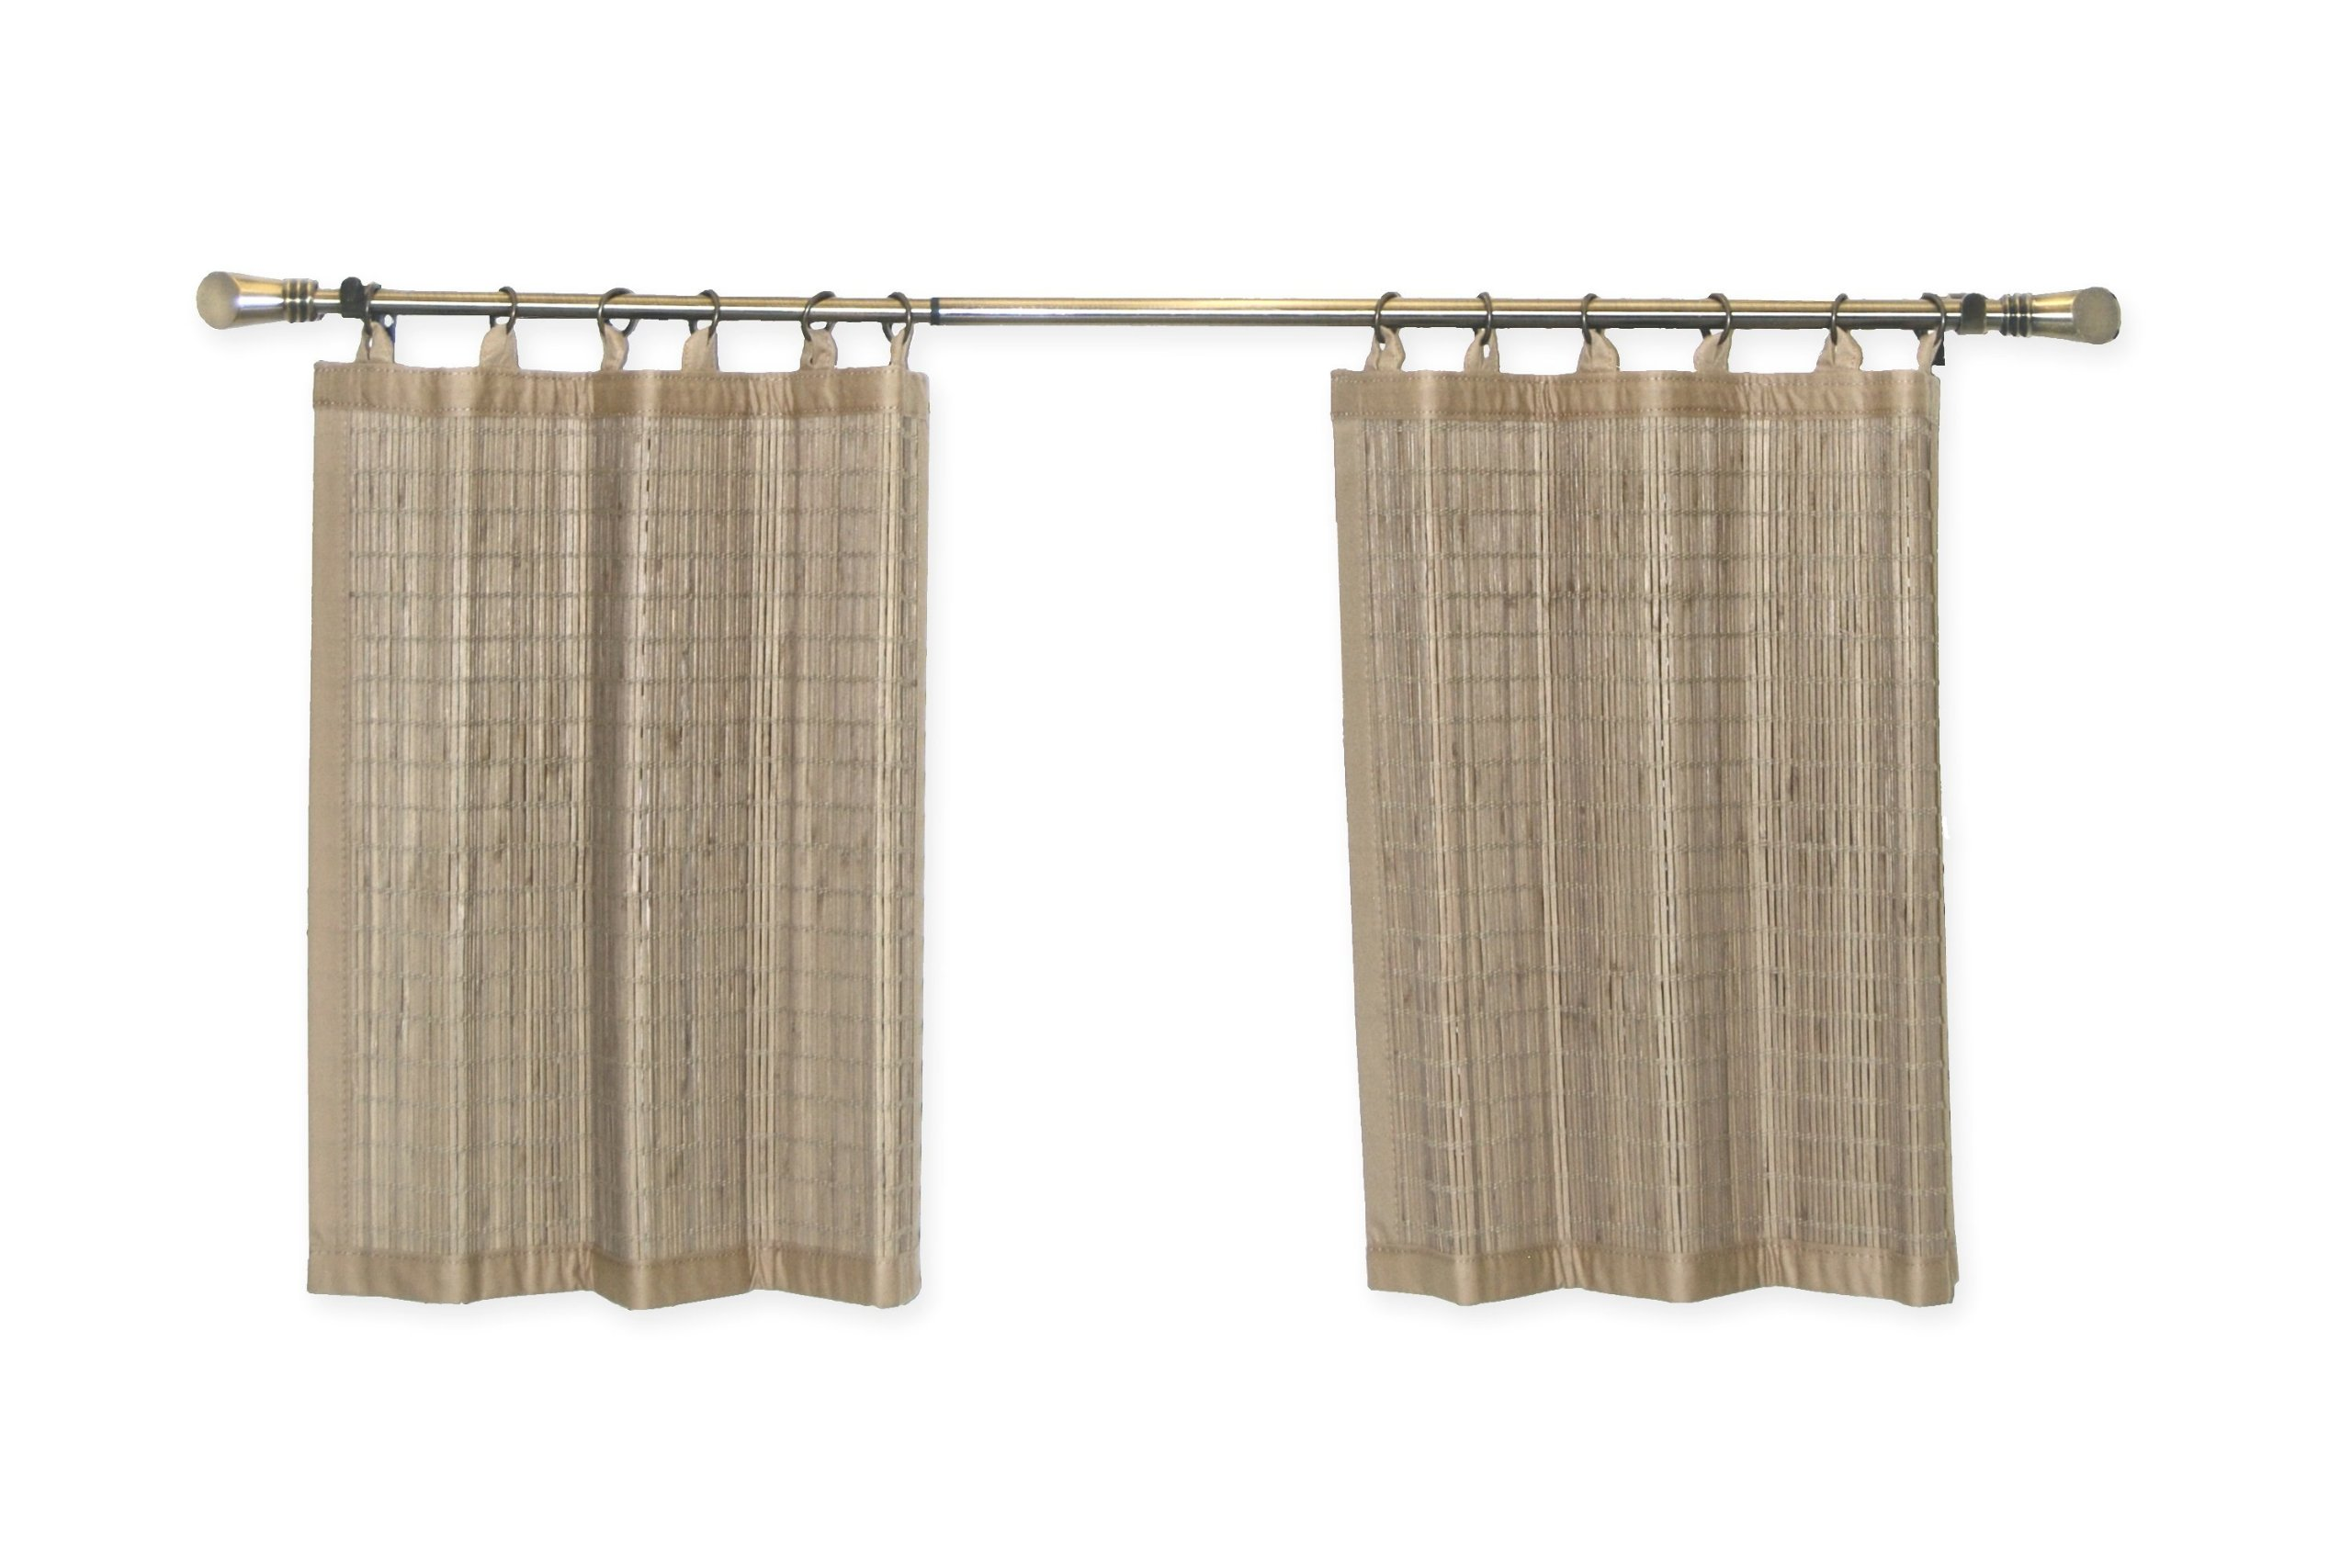 Bamboo Ring Top Curtain BRP05 2-Piece Ring Top Tier Set, 48 by 24-Inch, Driftwood by Bamboo (Image #2)